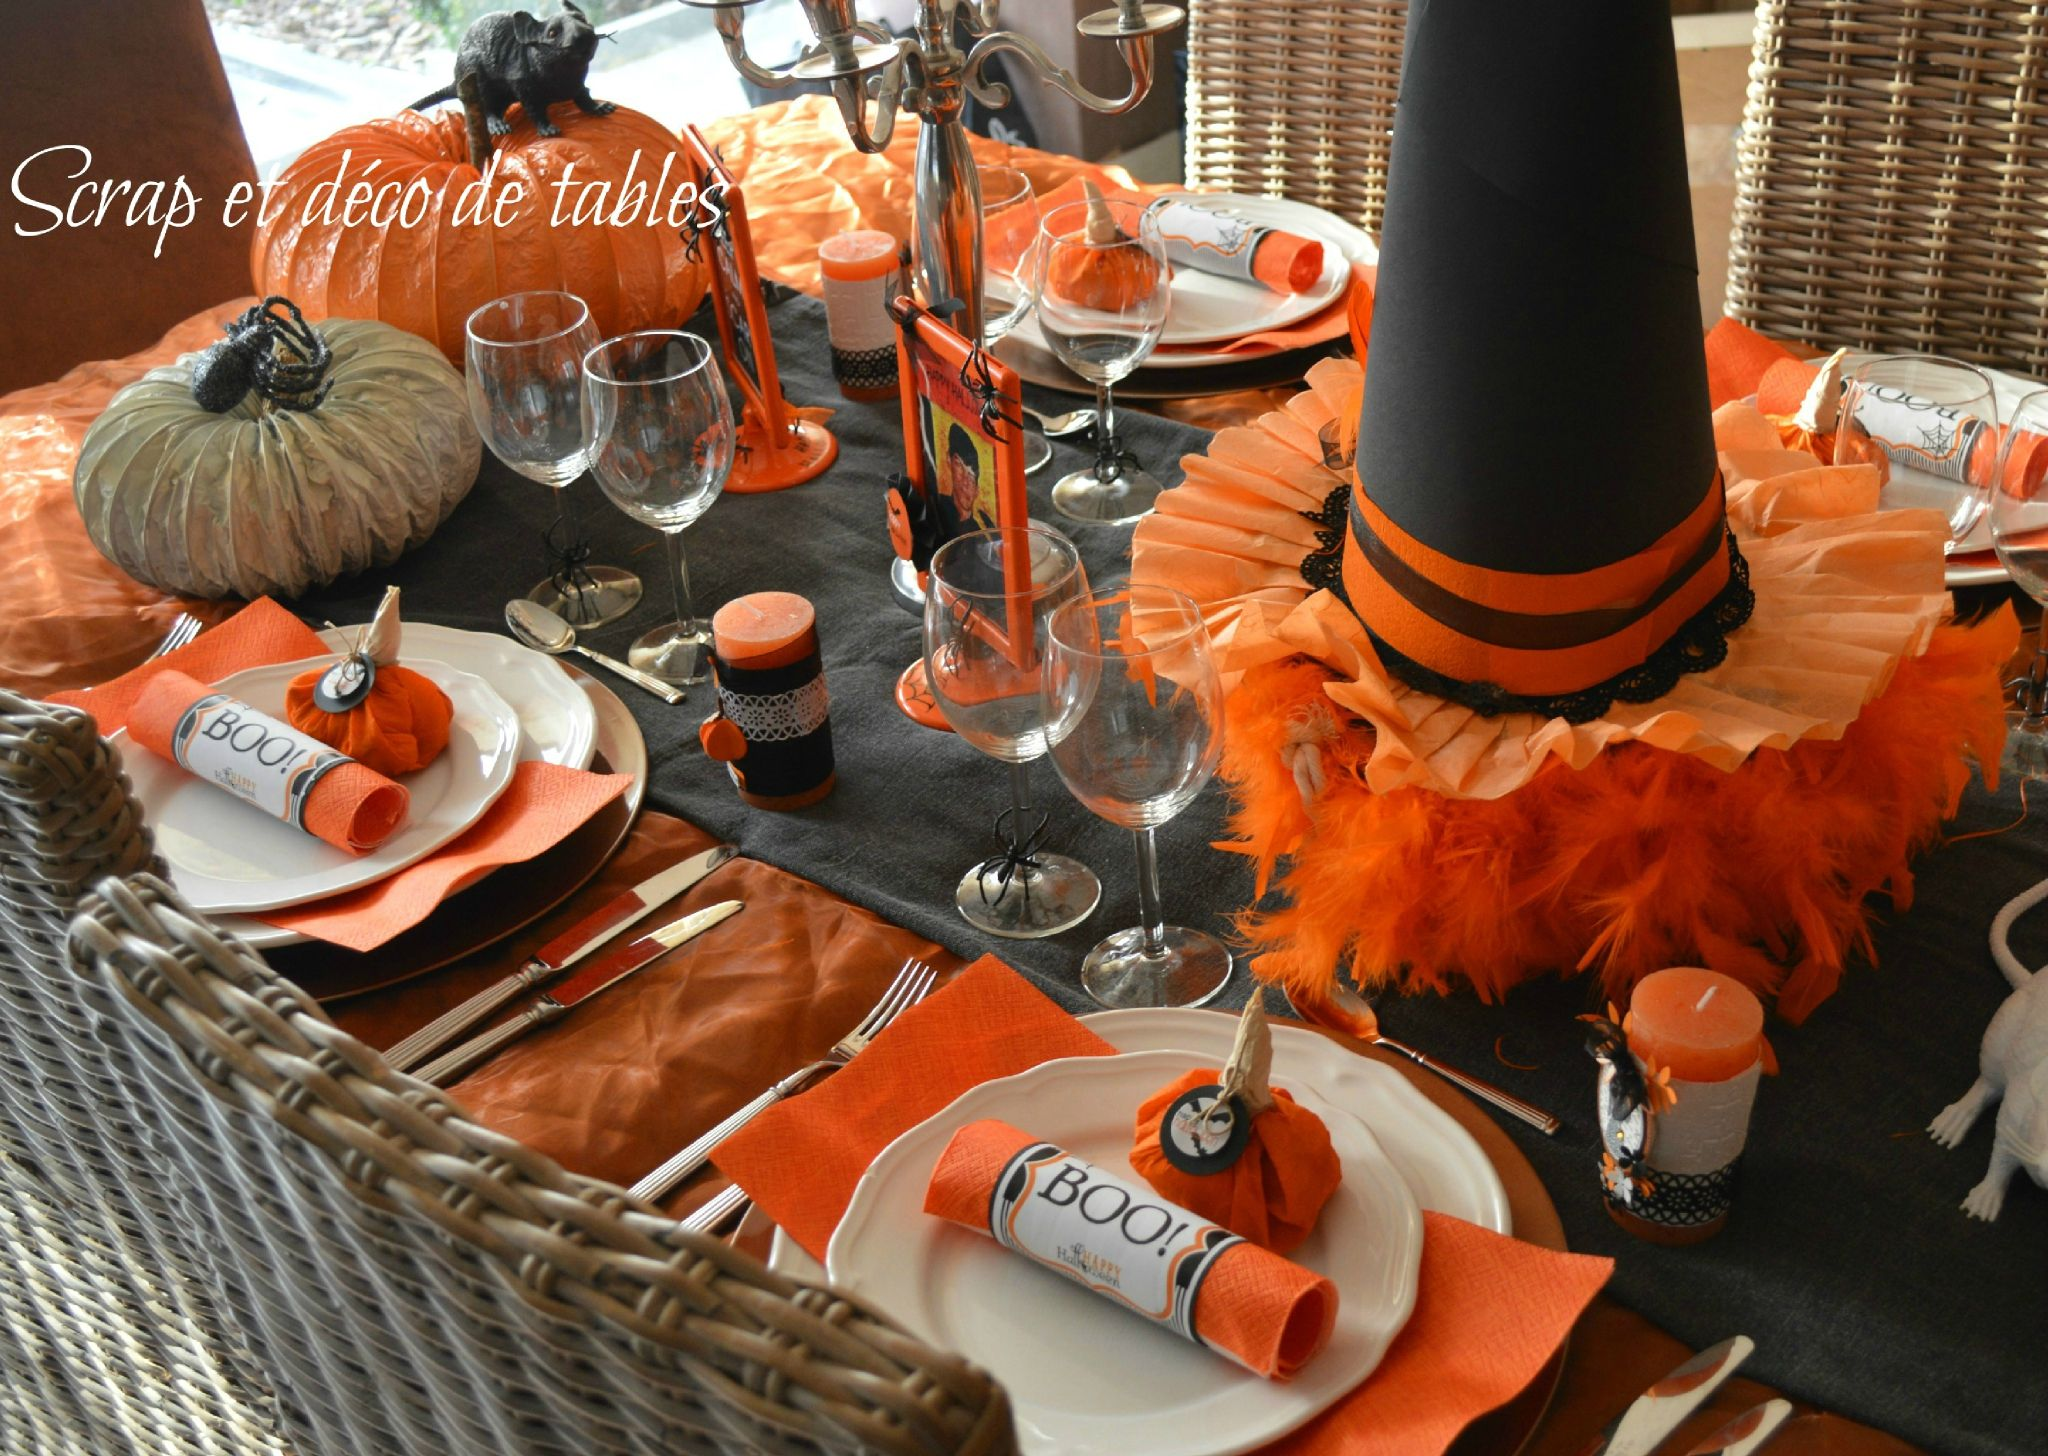 id e d co de table pour halloween 2 halloween pinterest deco de table halloween et idee. Black Bedroom Furniture Sets. Home Design Ideas